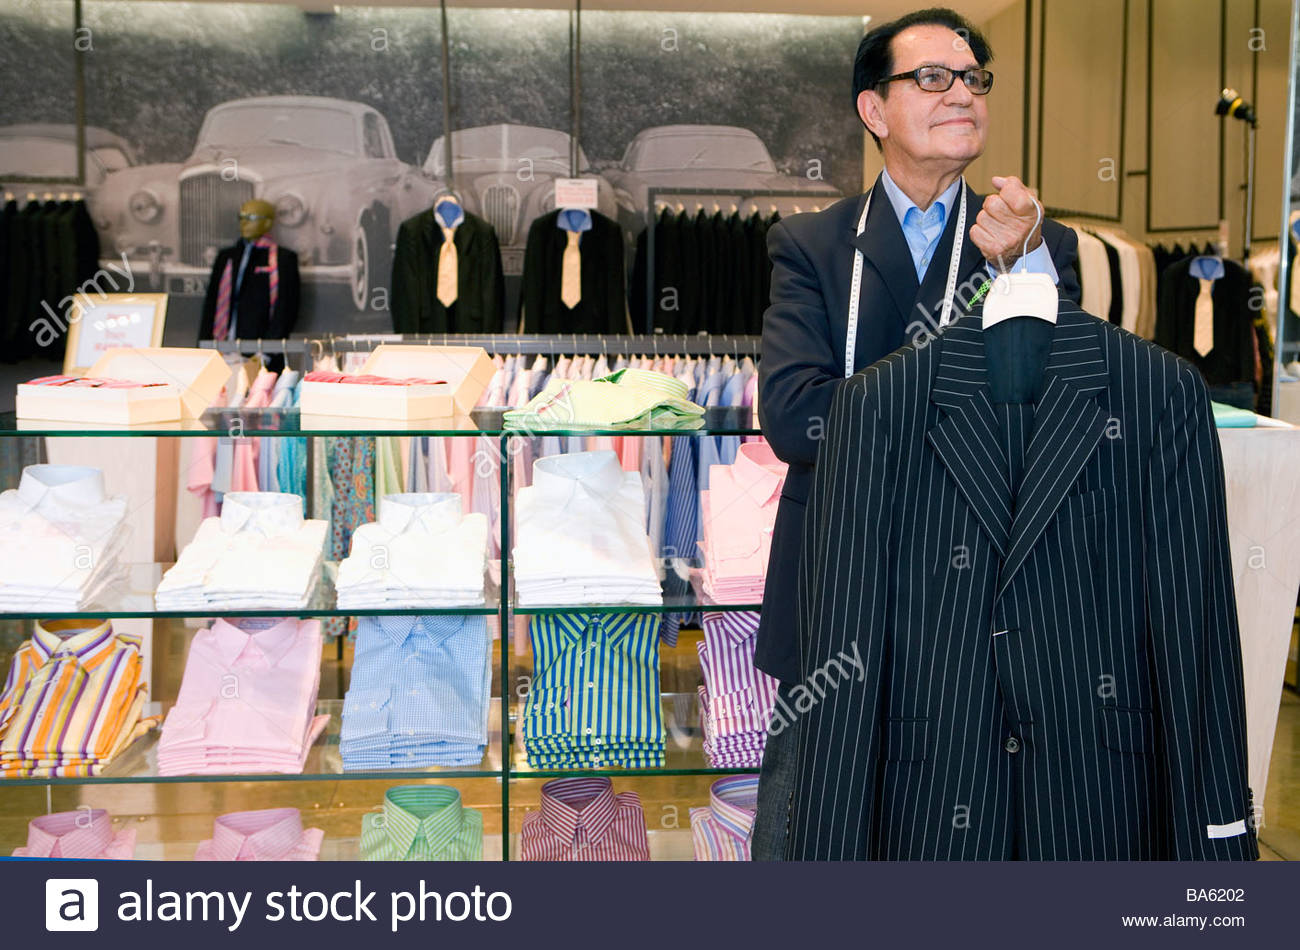 Male tailor in shop holding suit jacket, smiling - Stock Image